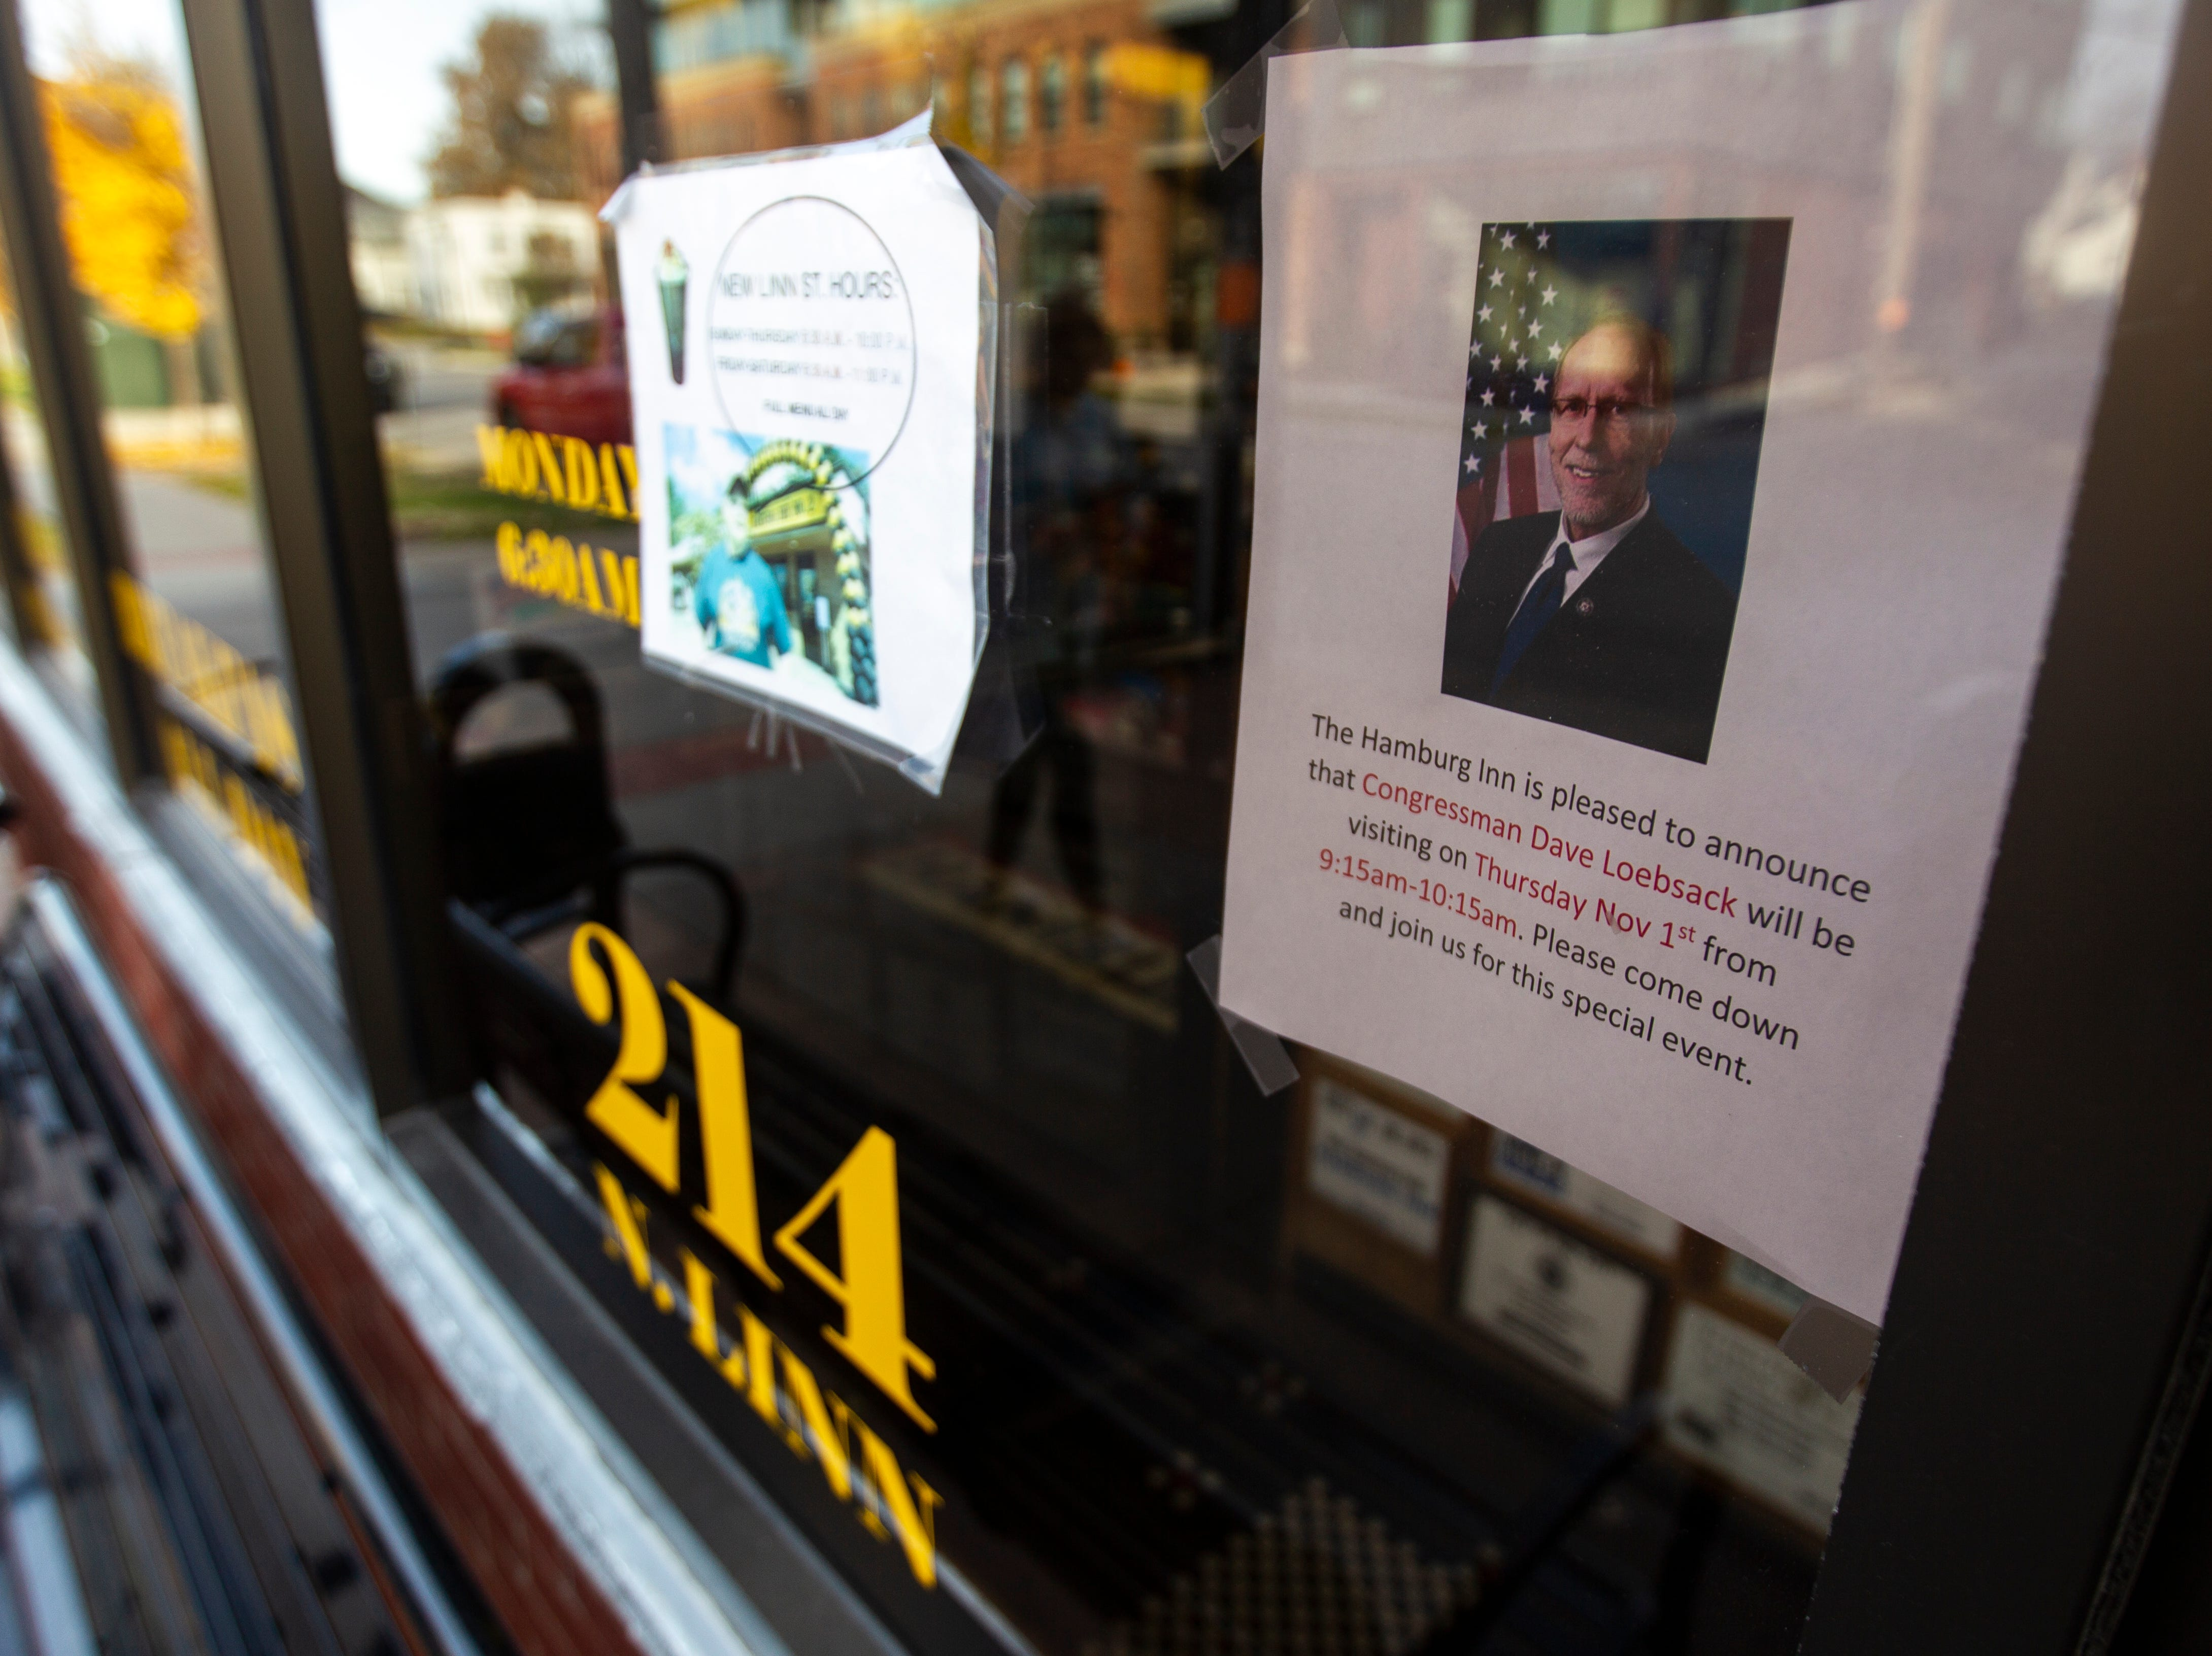 A piece of paper is taped up ahead of a visit from U.S. Rep. Dave Loebsack, D-Iowa, on Thursday morning, Nov. 1, 2018, at Hamburg Inn No. 2 on Linn Street in Iowa City.